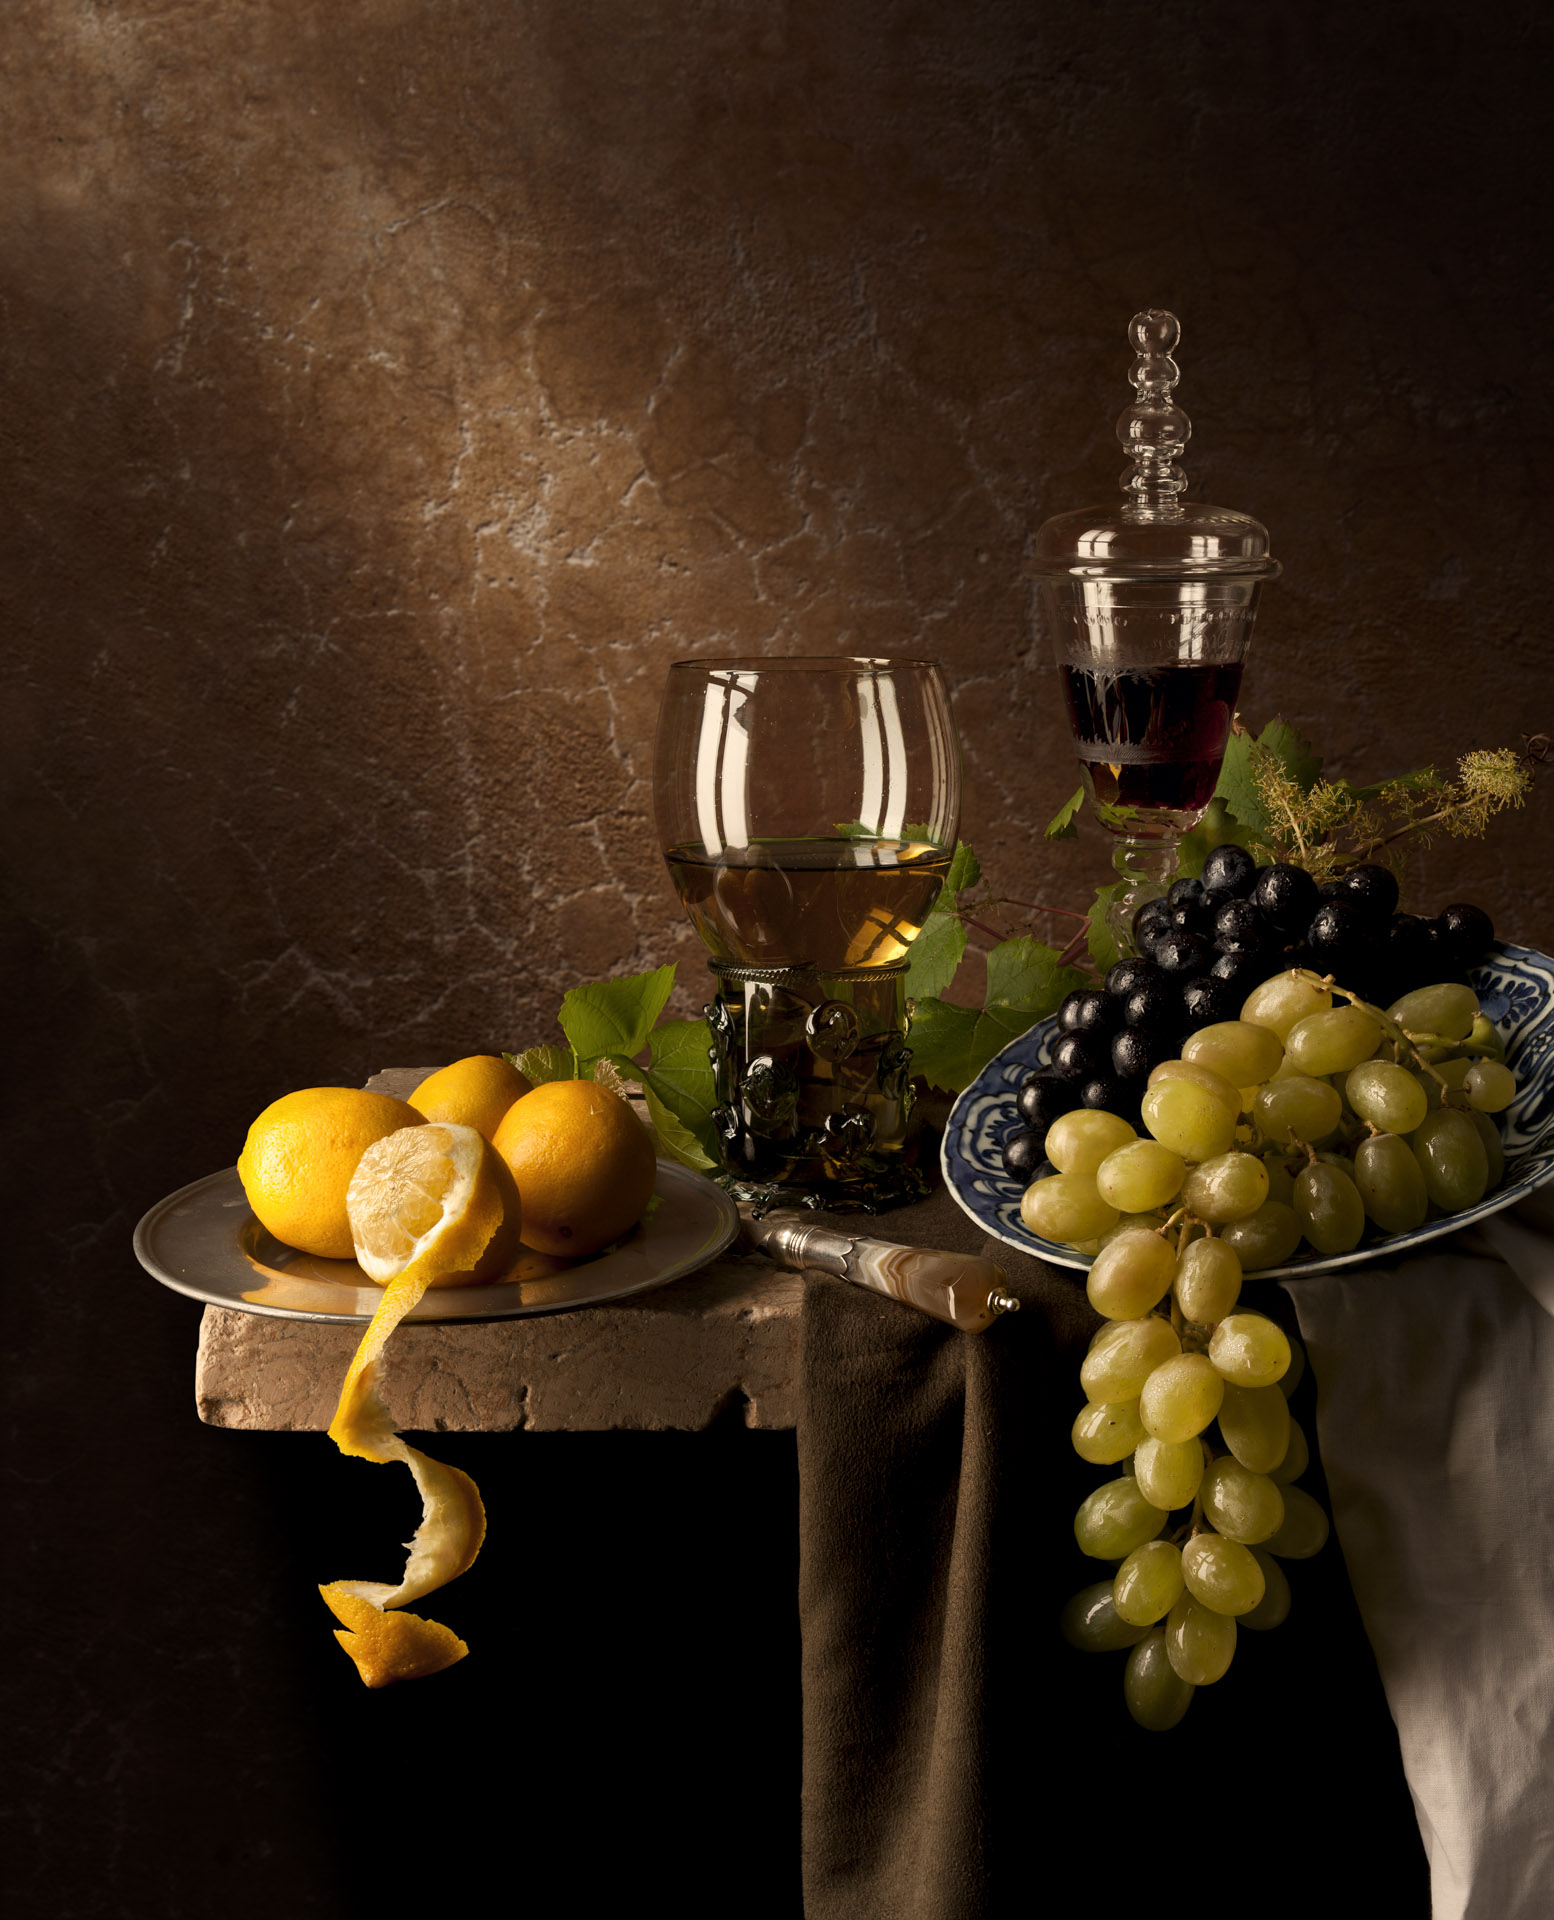 Still life with grapes and lemons